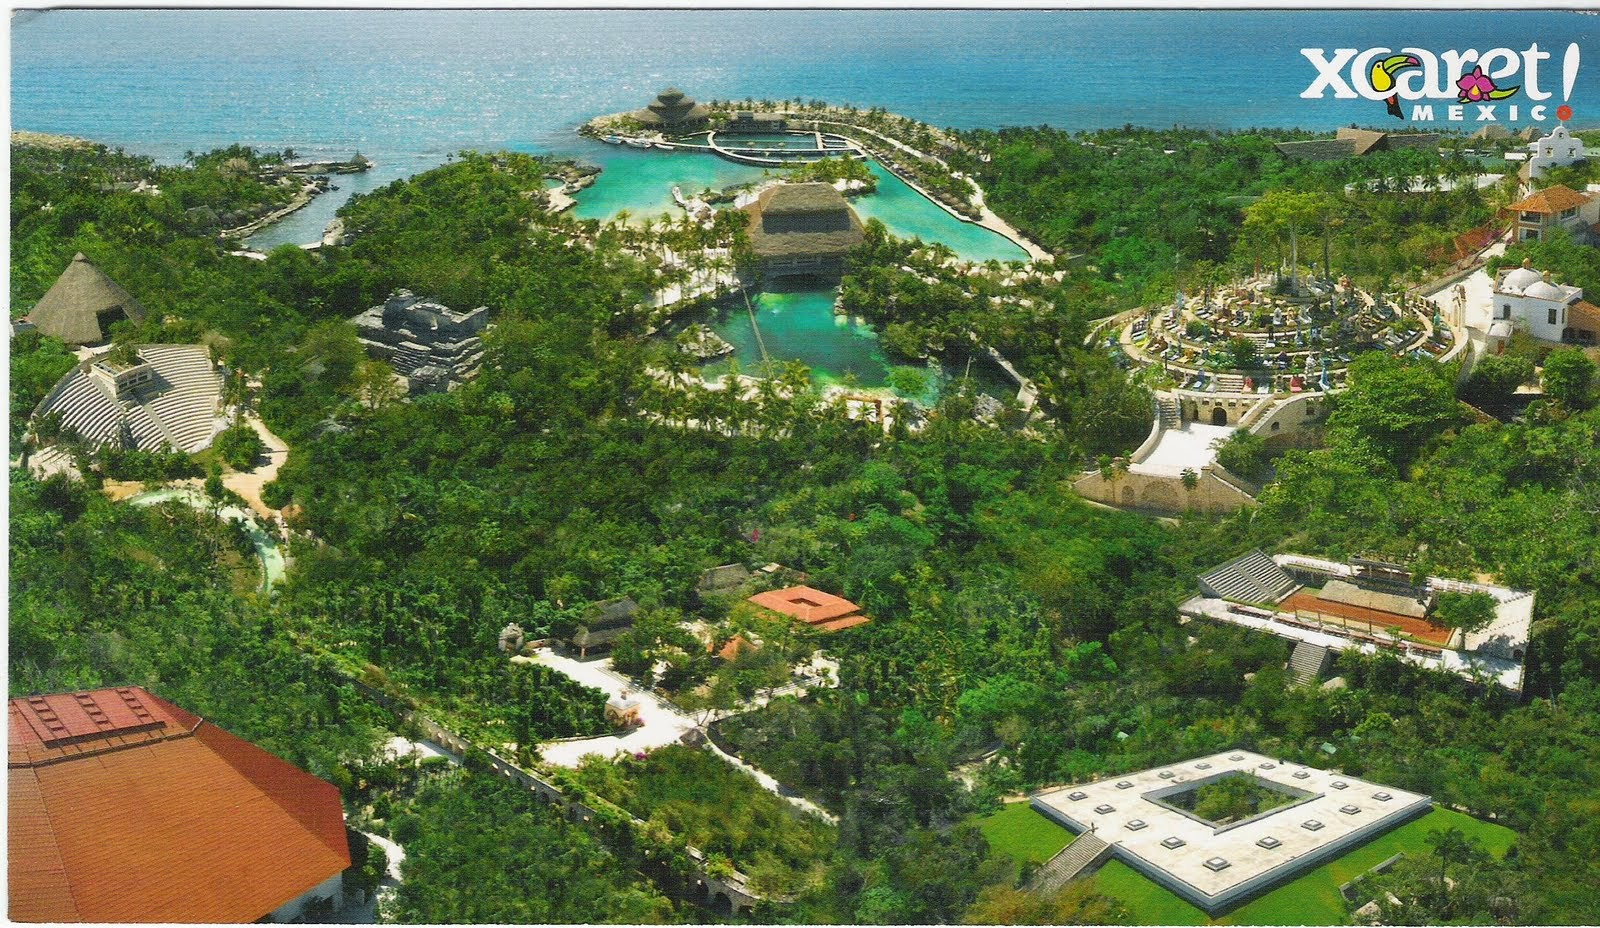 Amazing place xcaret a paradise in the riviera maya for Oficina xcaret cancun